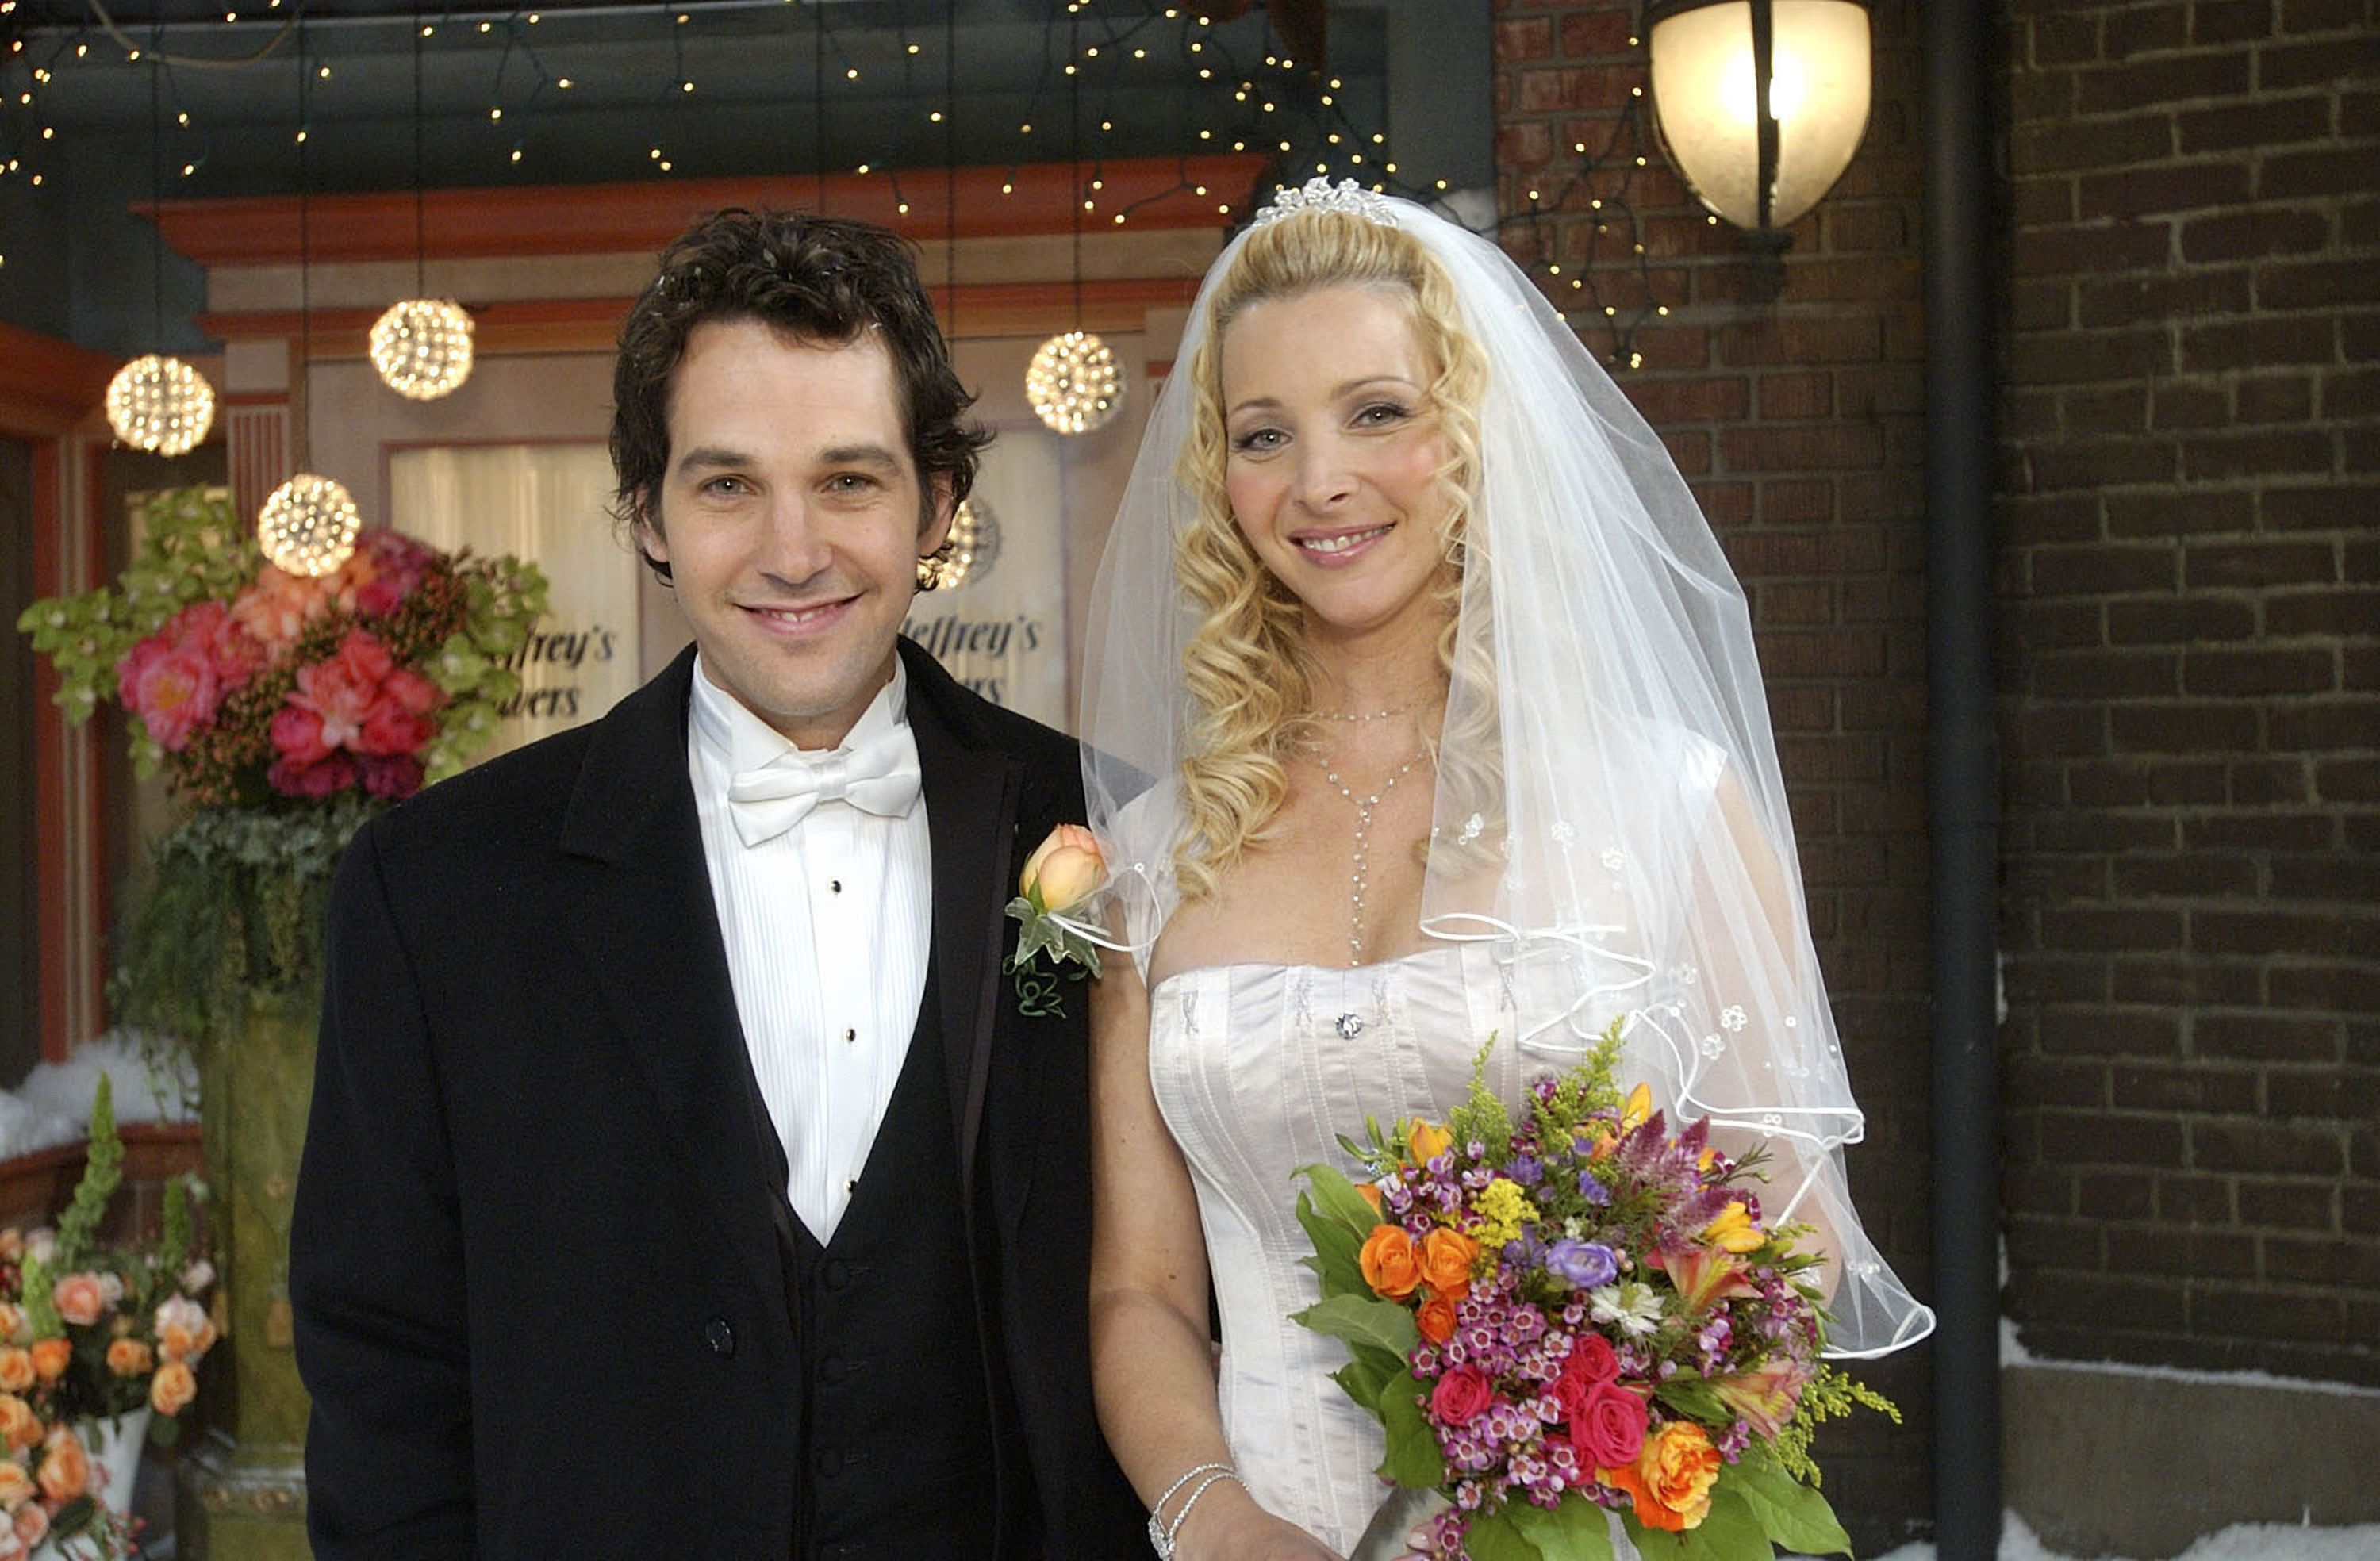 Phoebe Buffay Was Never Meant To End Up With Mike Hannigan In Friends